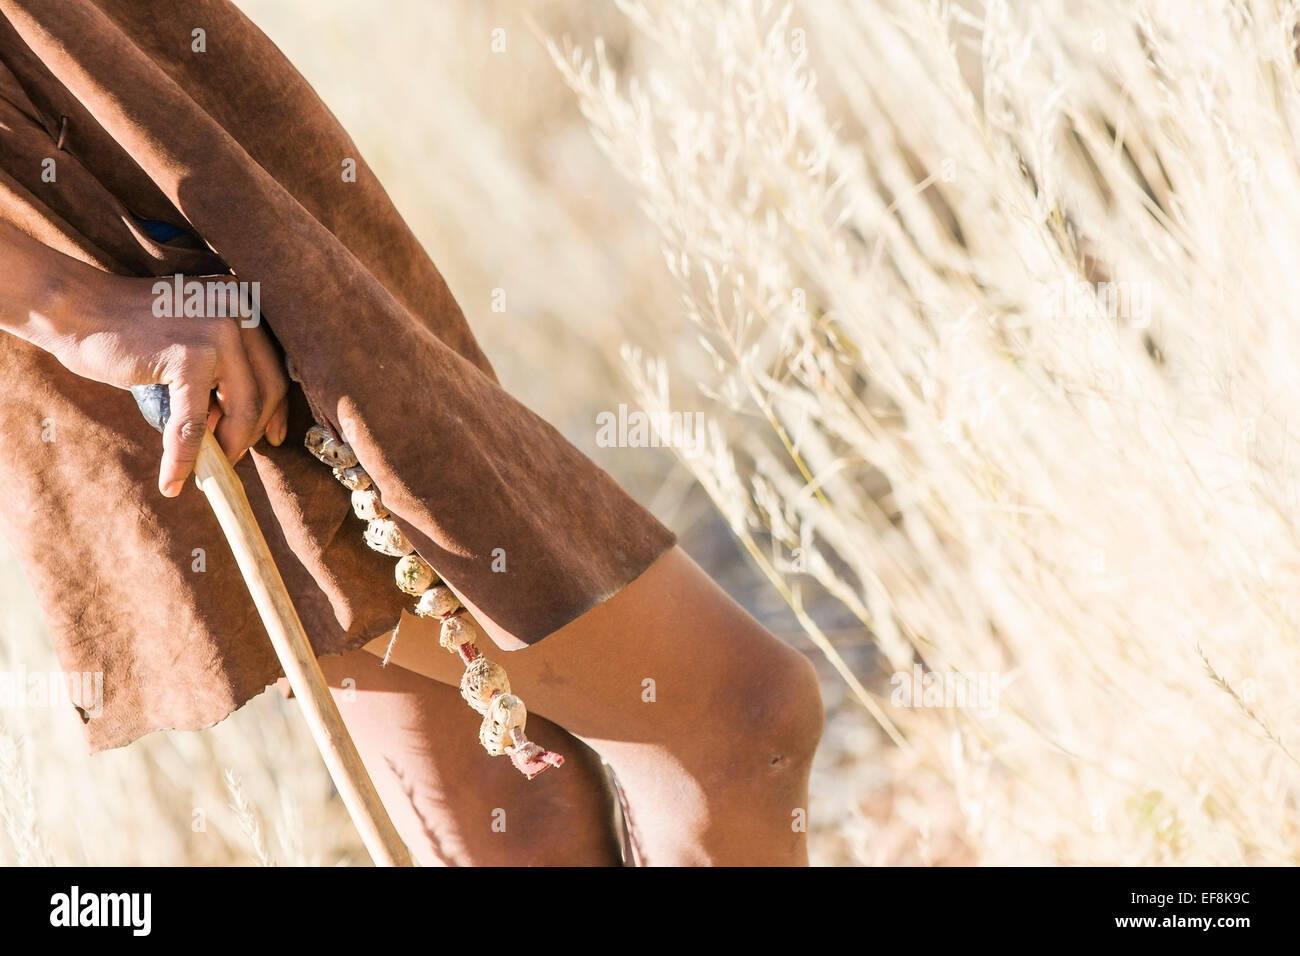 Bushman in leather tunic leans on wooden stick while resting during a hunt in the tall grasses of the Kalahari, - Stock Image